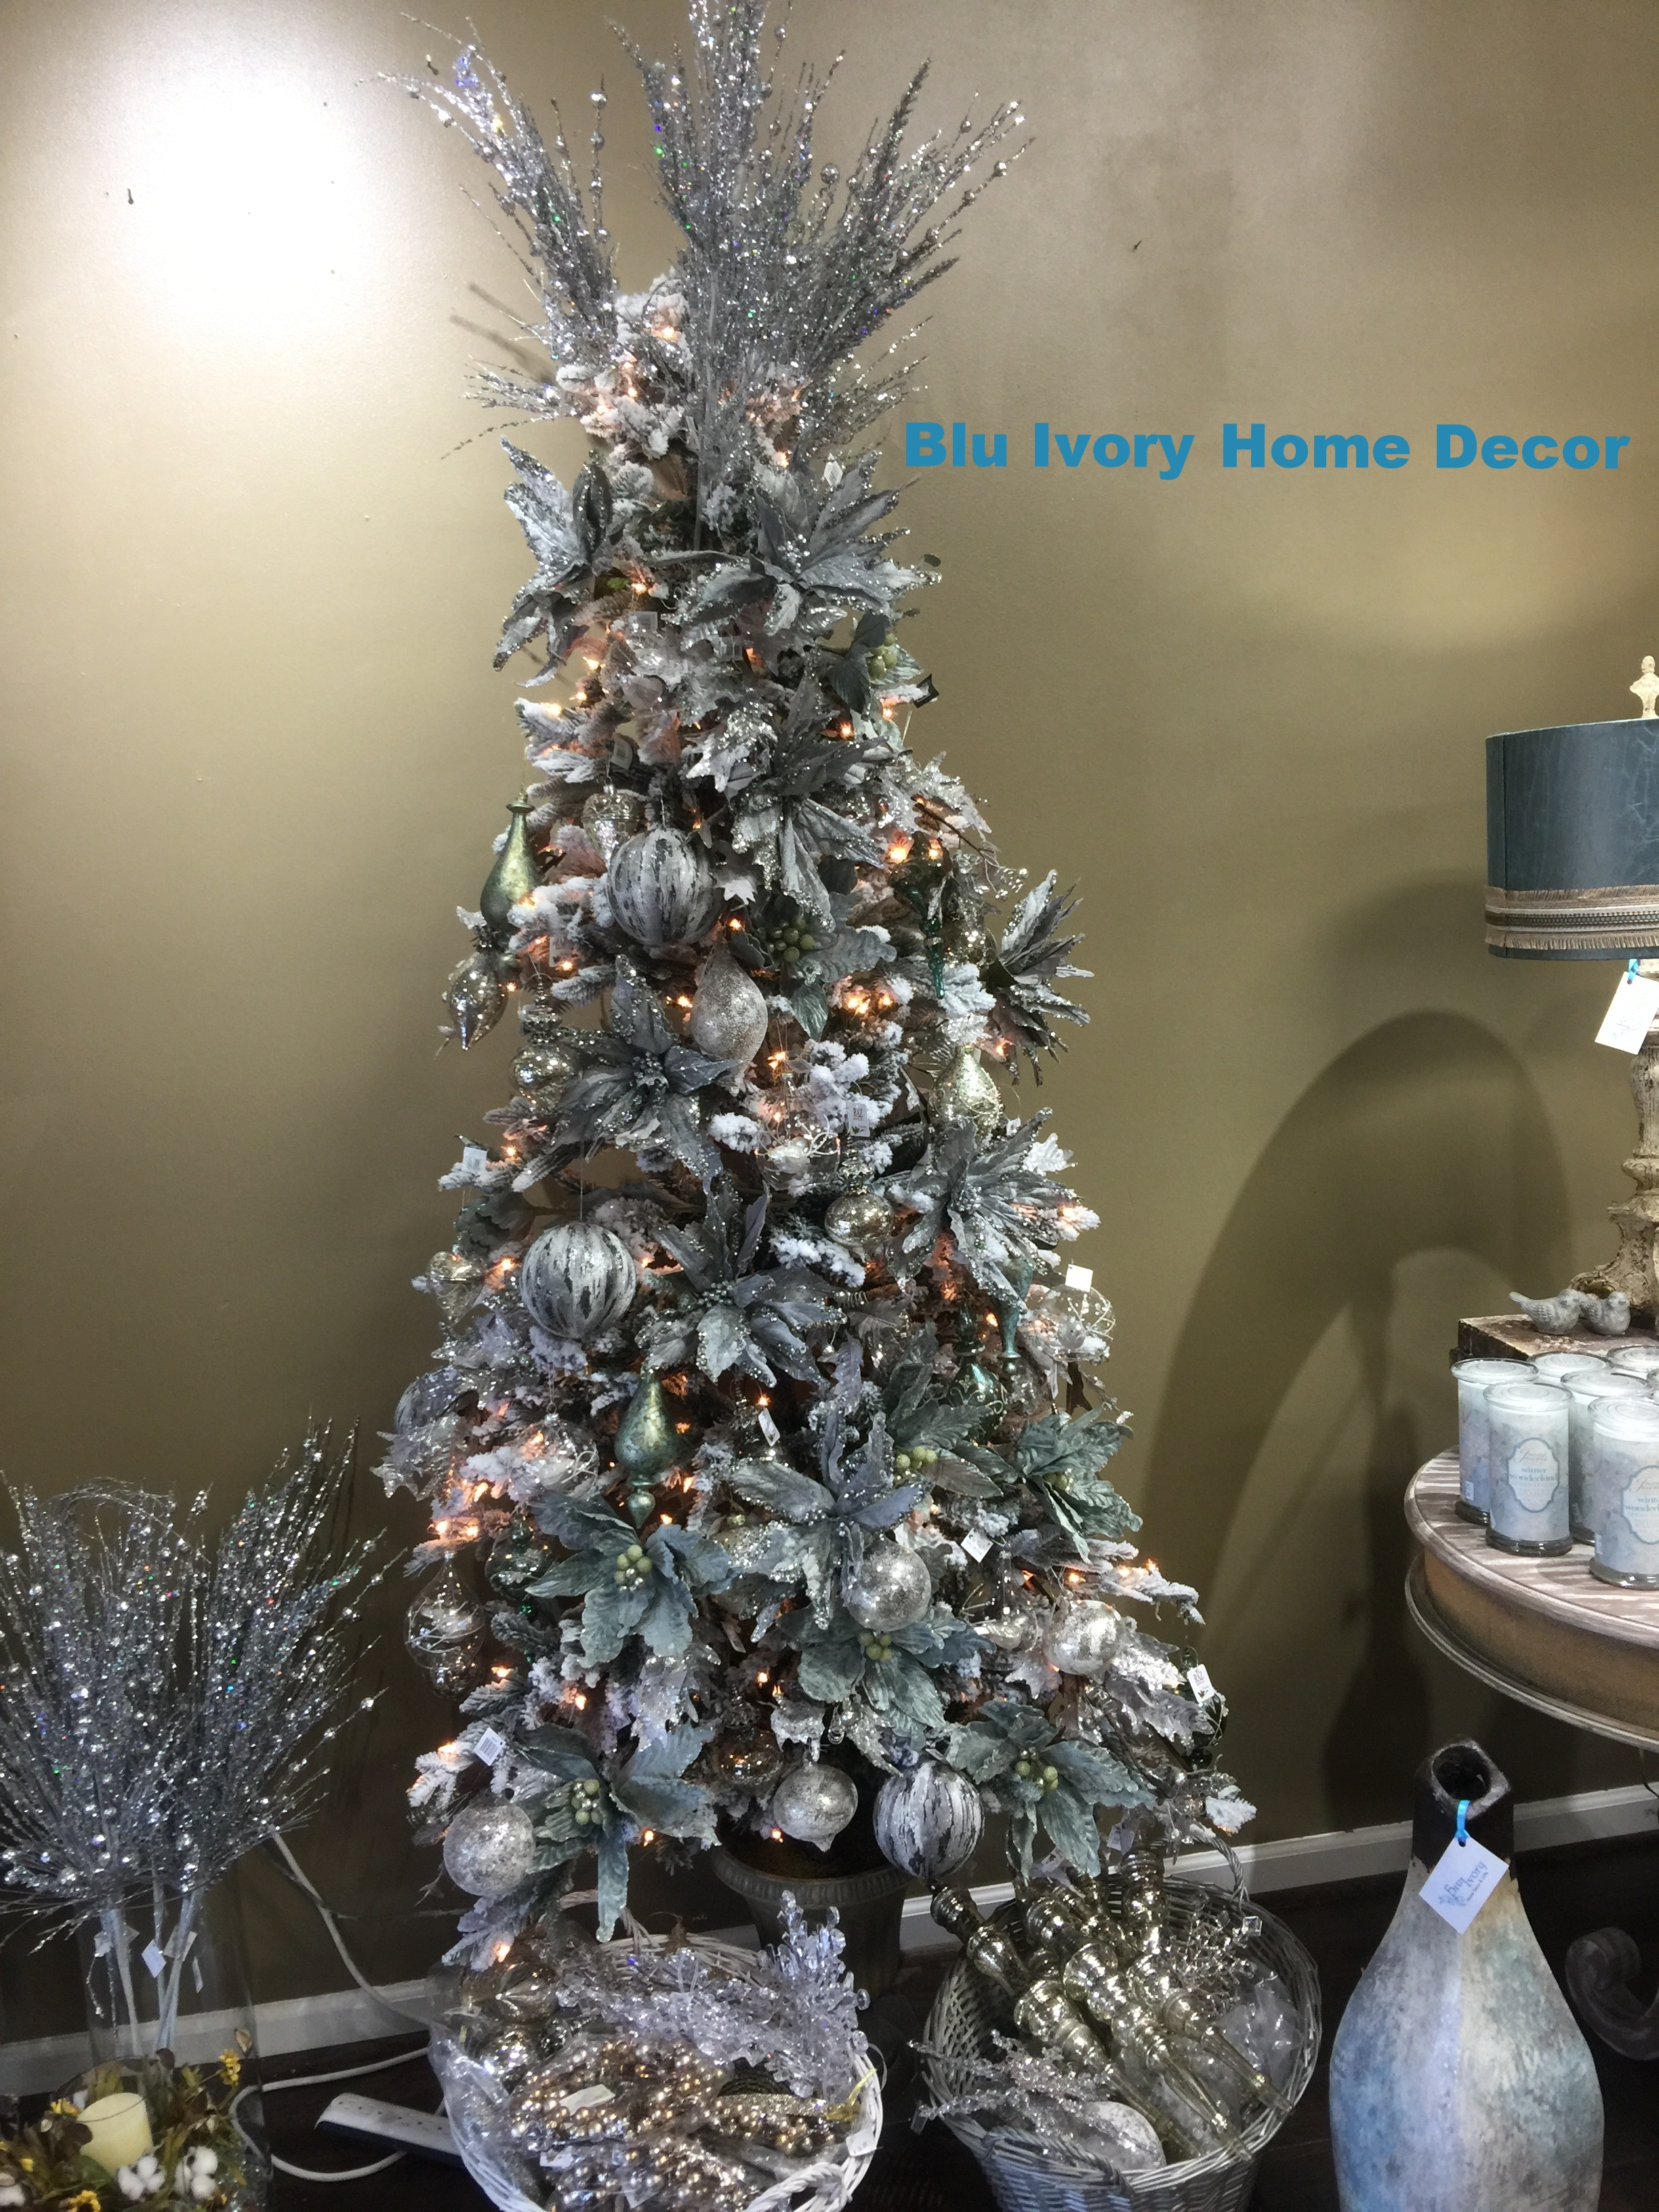 This tree is available at our location Blu Ivory Home Decor